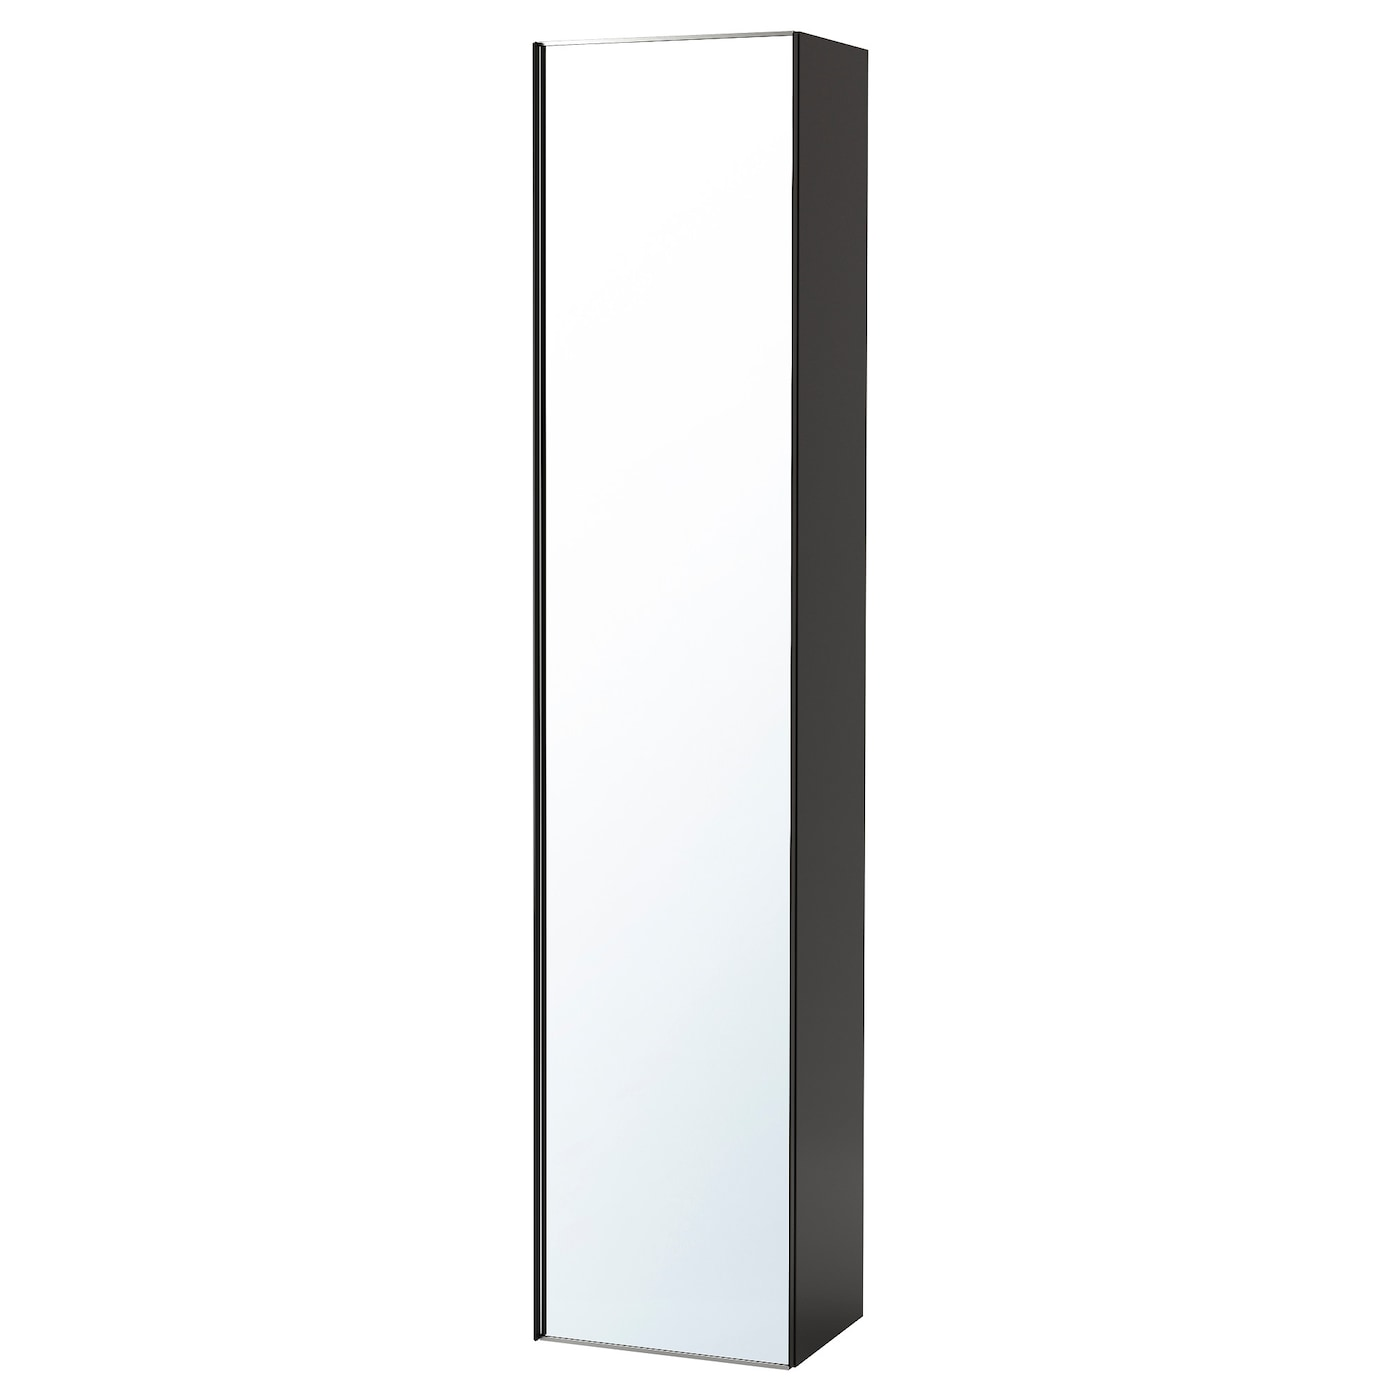 godmorgon high cabinet with mirror door high gloss grey. Black Bedroom Furniture Sets. Home Design Ideas